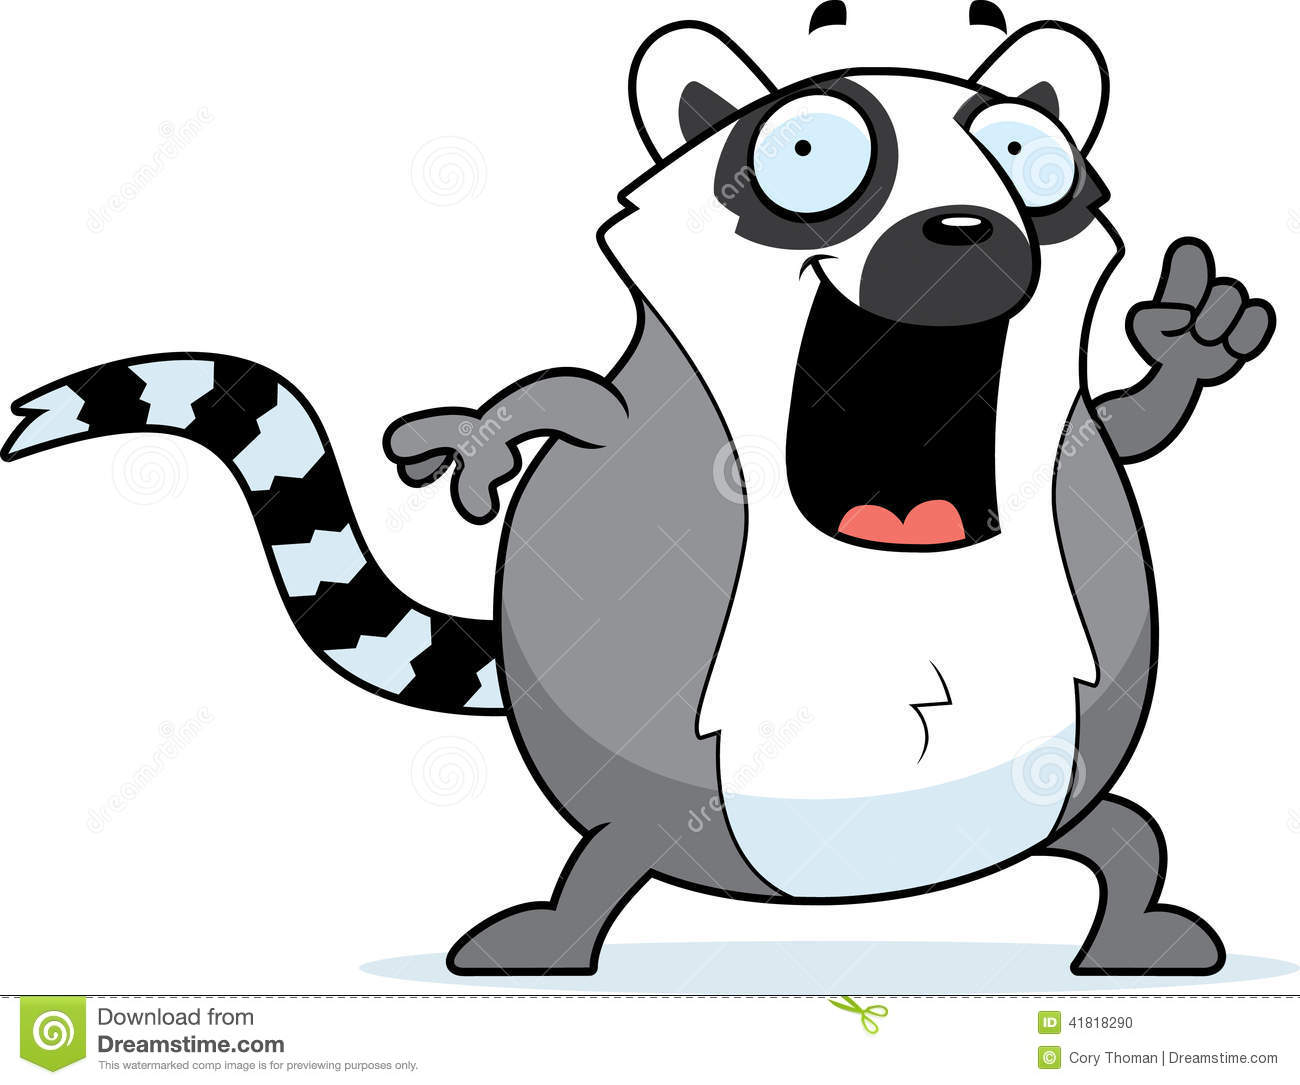 Cartoon Lemur Idea Stock Vector - Image: 41818290